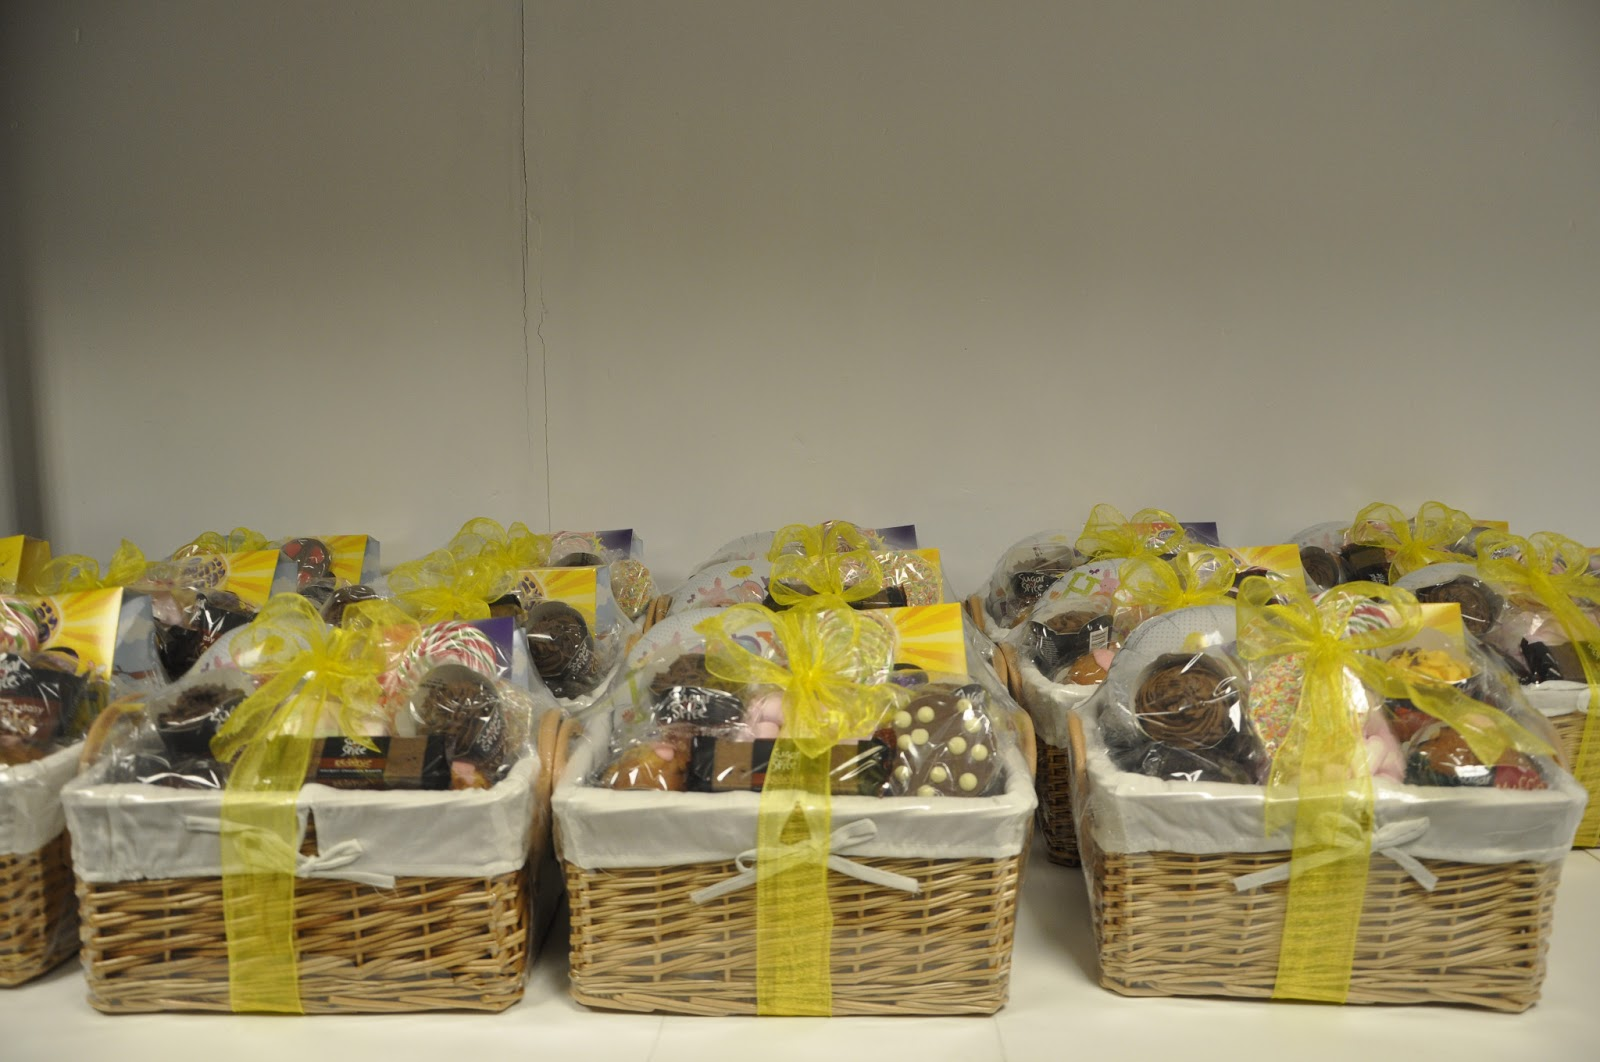 Easter basket presentation baskets galore great time and effort went in to choosing the products and arranging the easter baskets for our customers here are the final products ready for delivery negle Image collections